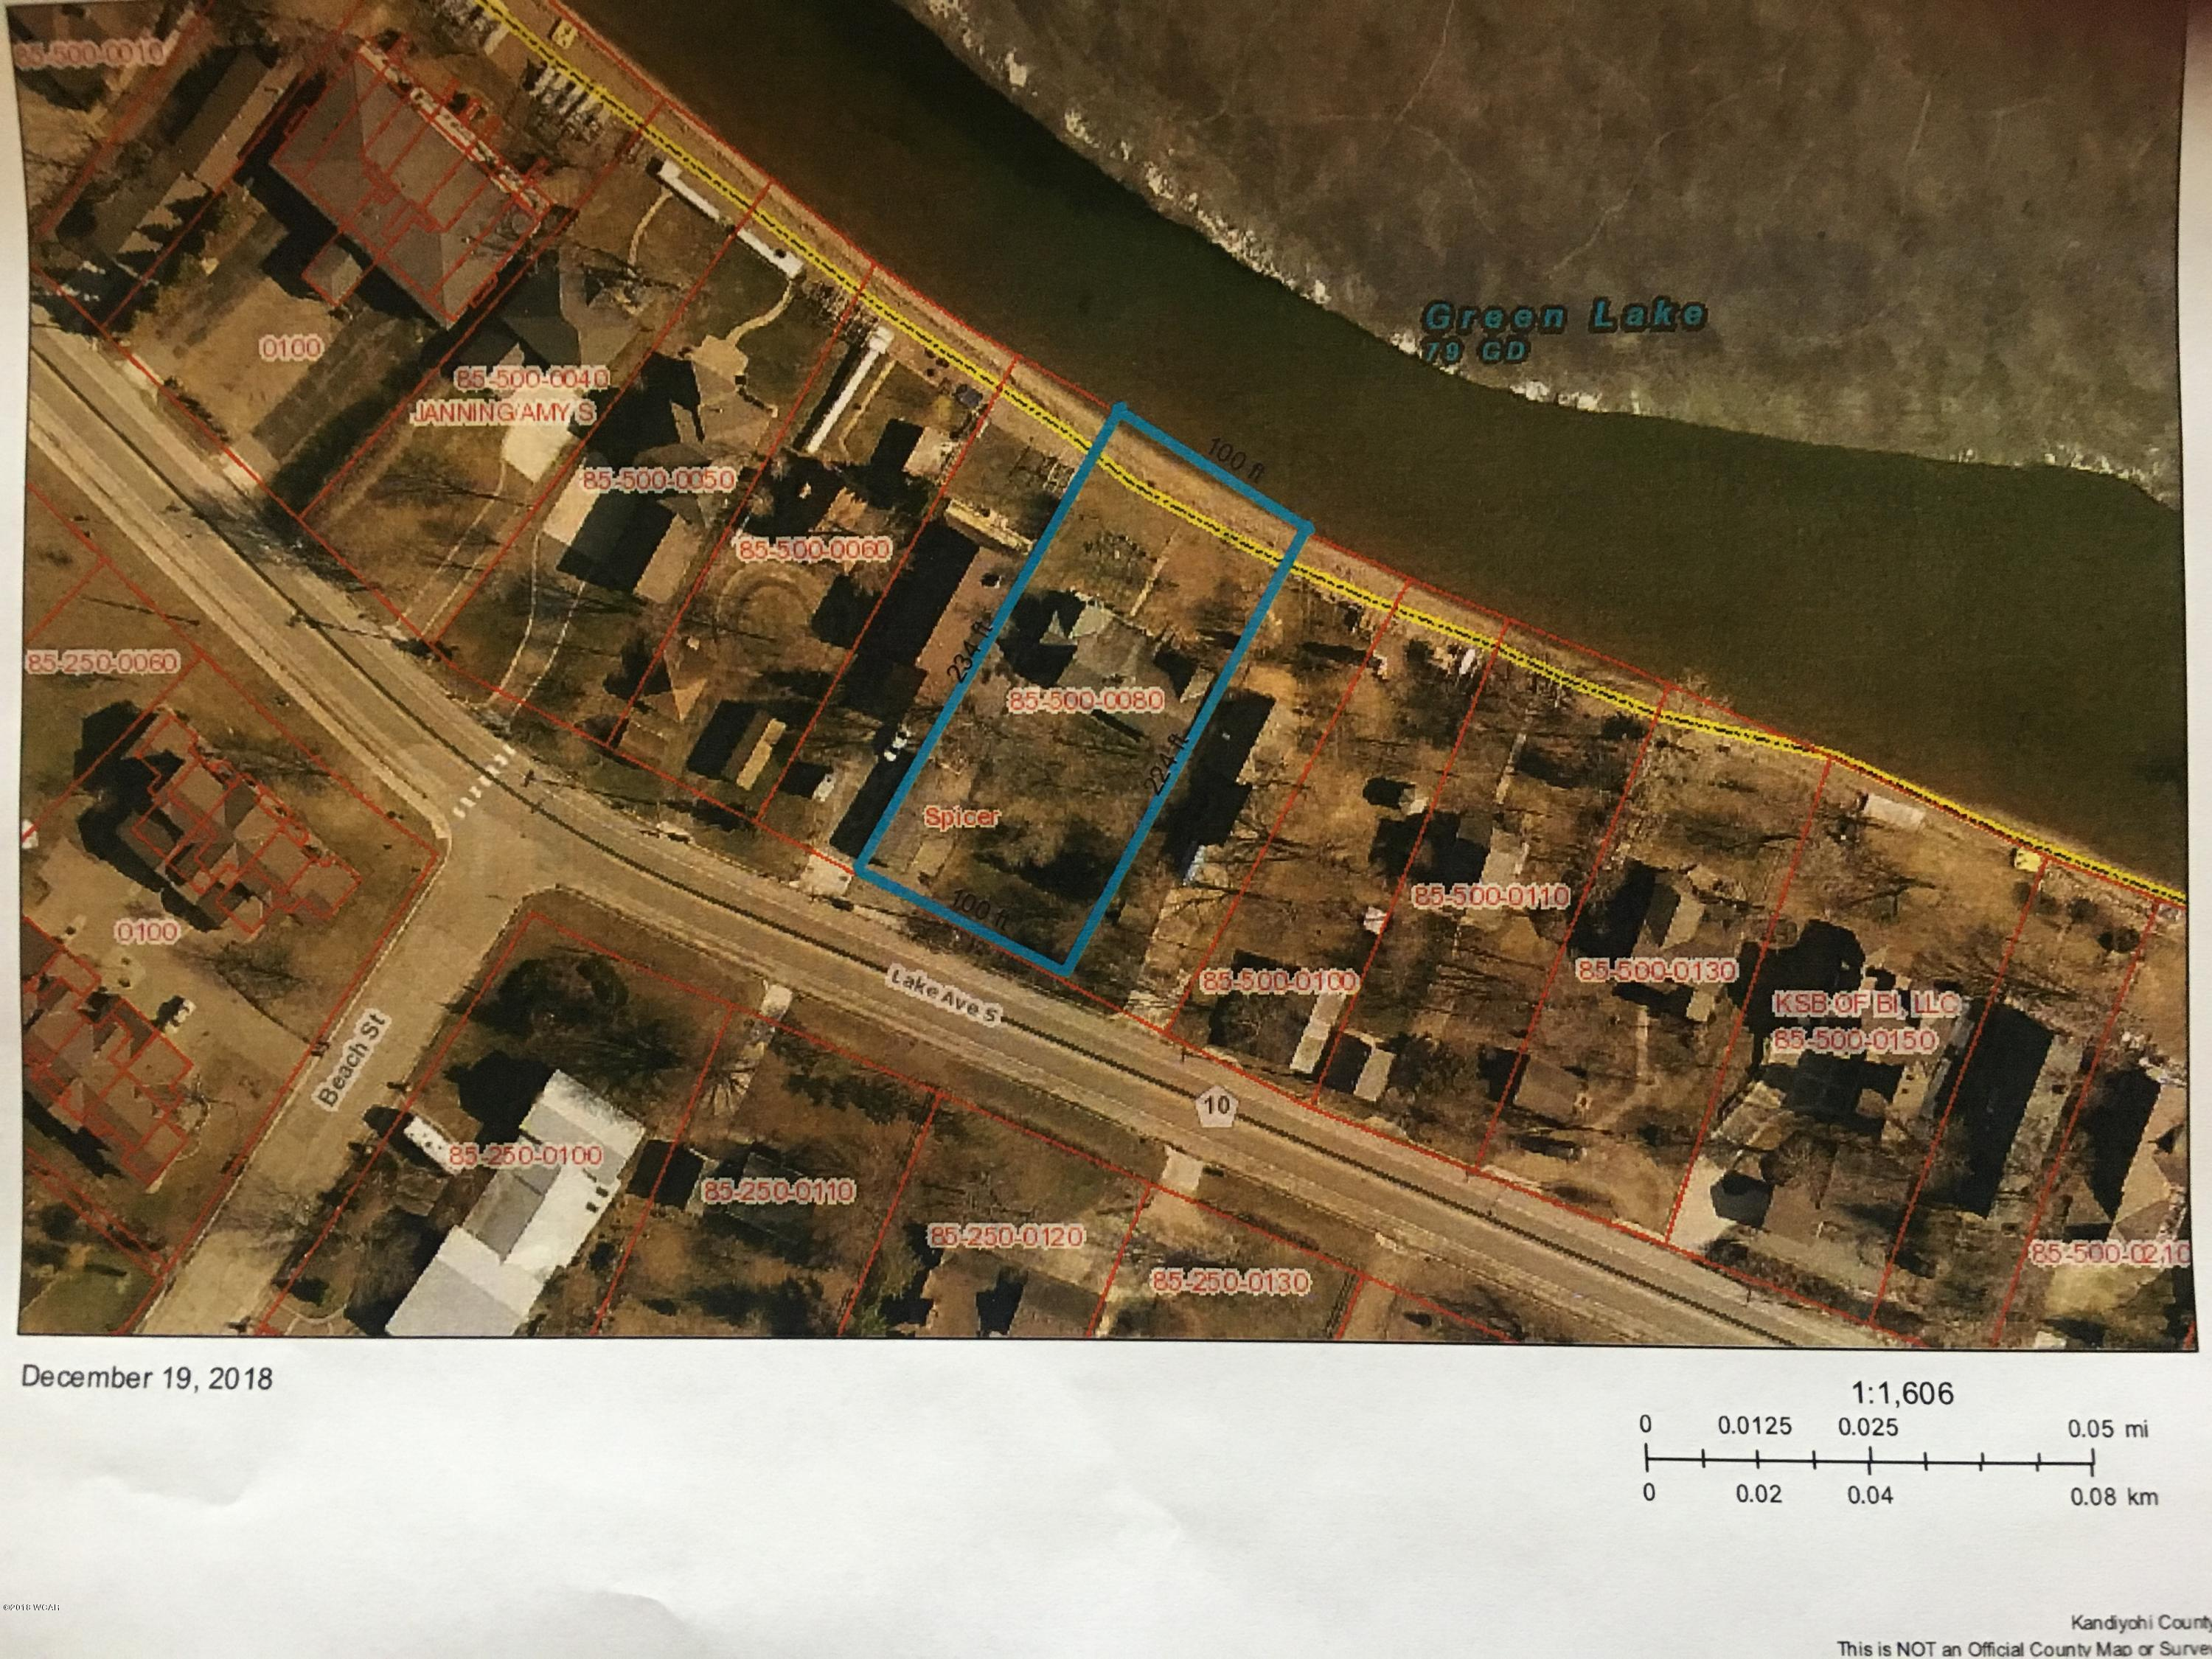 187 Lake Ave South Avenue,Spicer,Residential Land,Lake Ave South Avenue,6033131